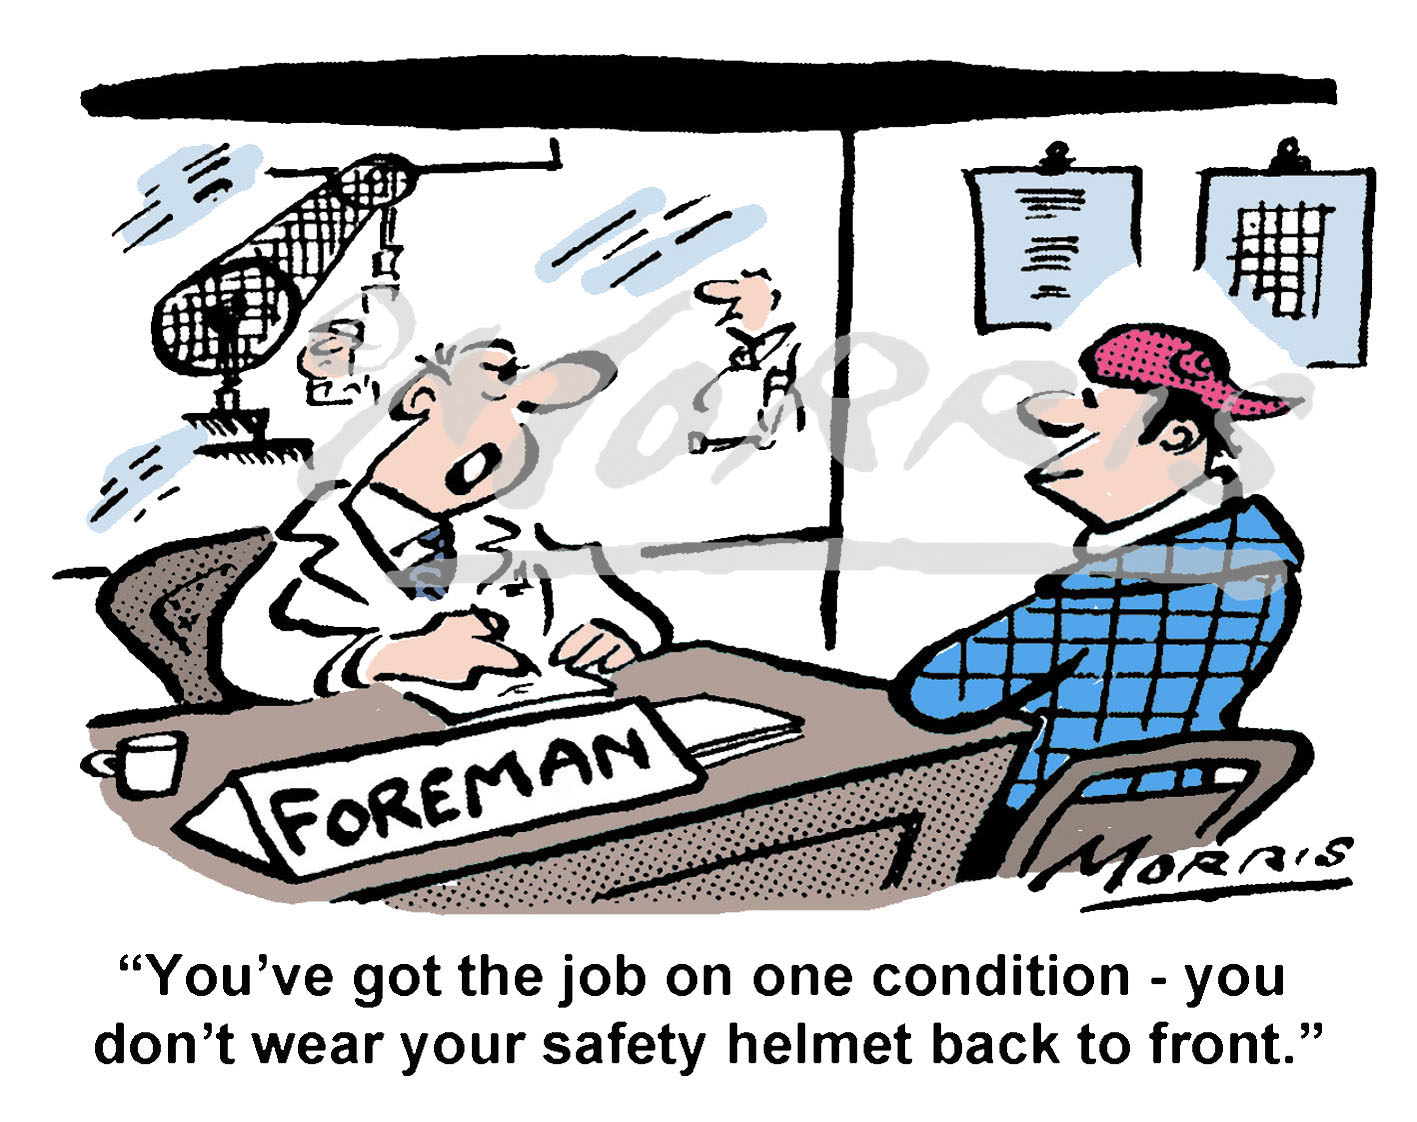 Job interview cartoon, Health & Safety cartoon – Ref: 8588col